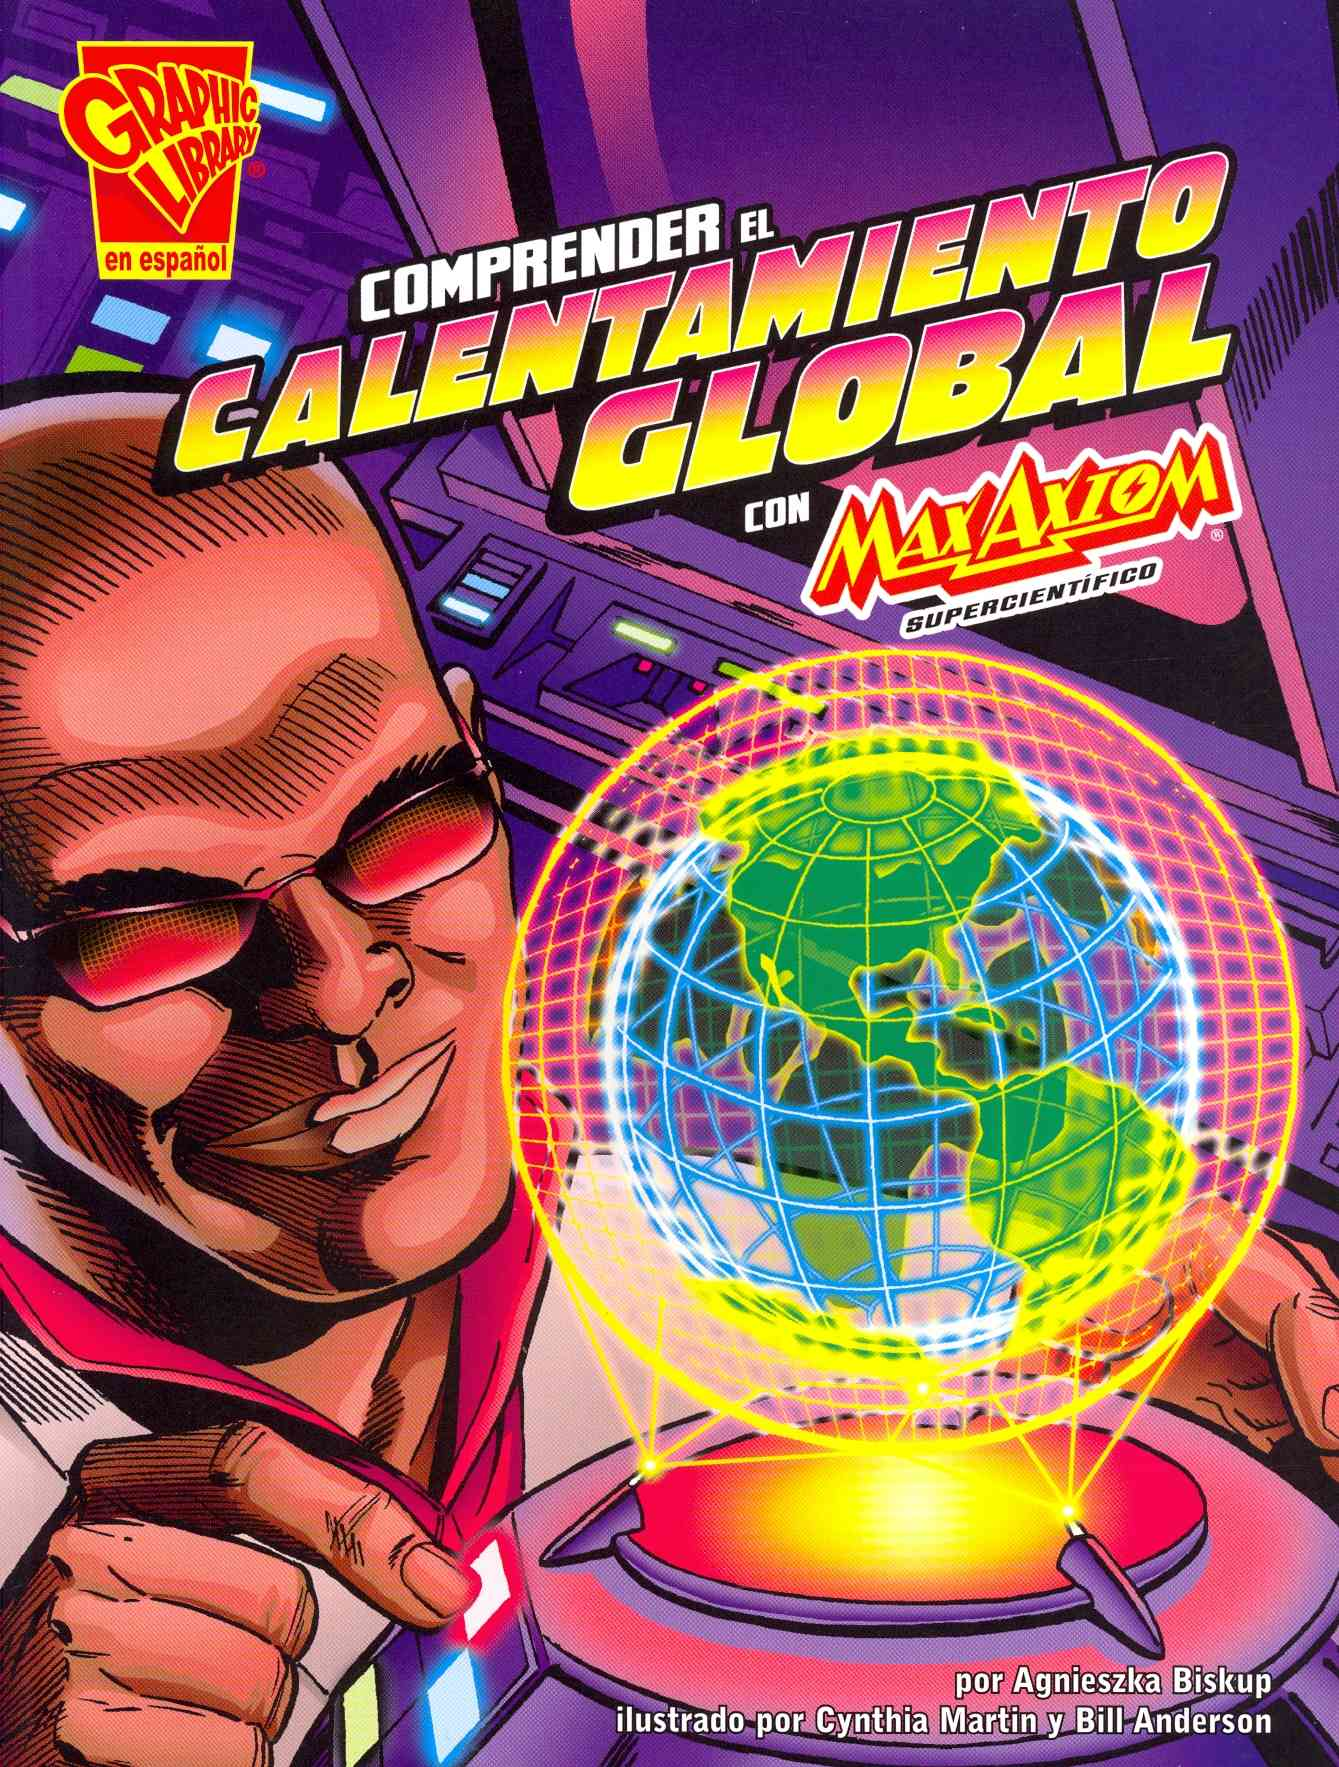 Comprender el calentamiento global con Max Axiom, supercientifico/ Understanding Global Warming with Max Axiom, Super Scientist By Biskup, Agnieszka/ Martin, Cynthia (ILT)